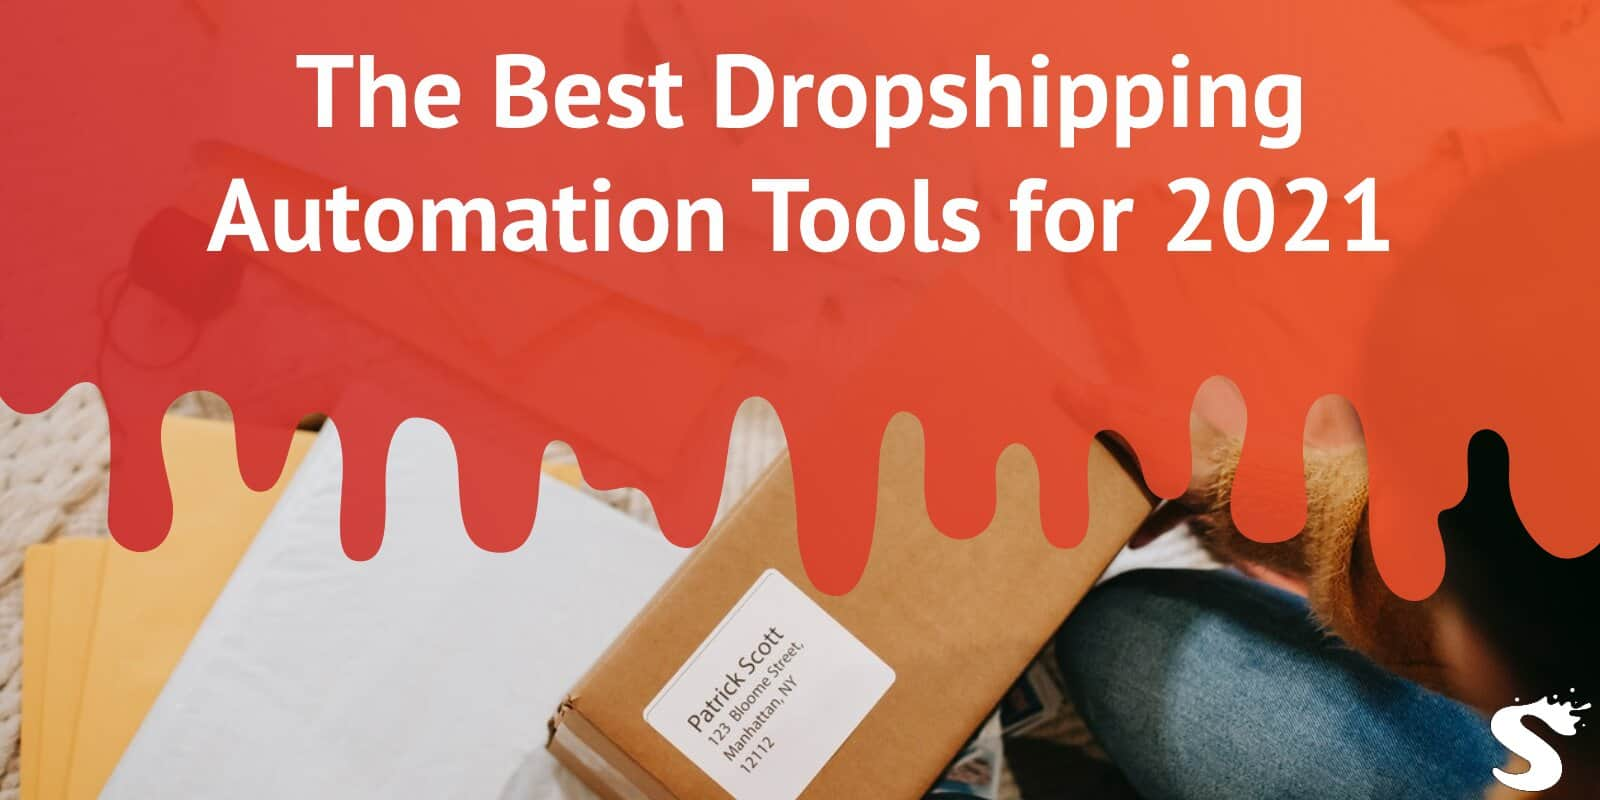 The Best Dropshipping Automation Tools for 2021